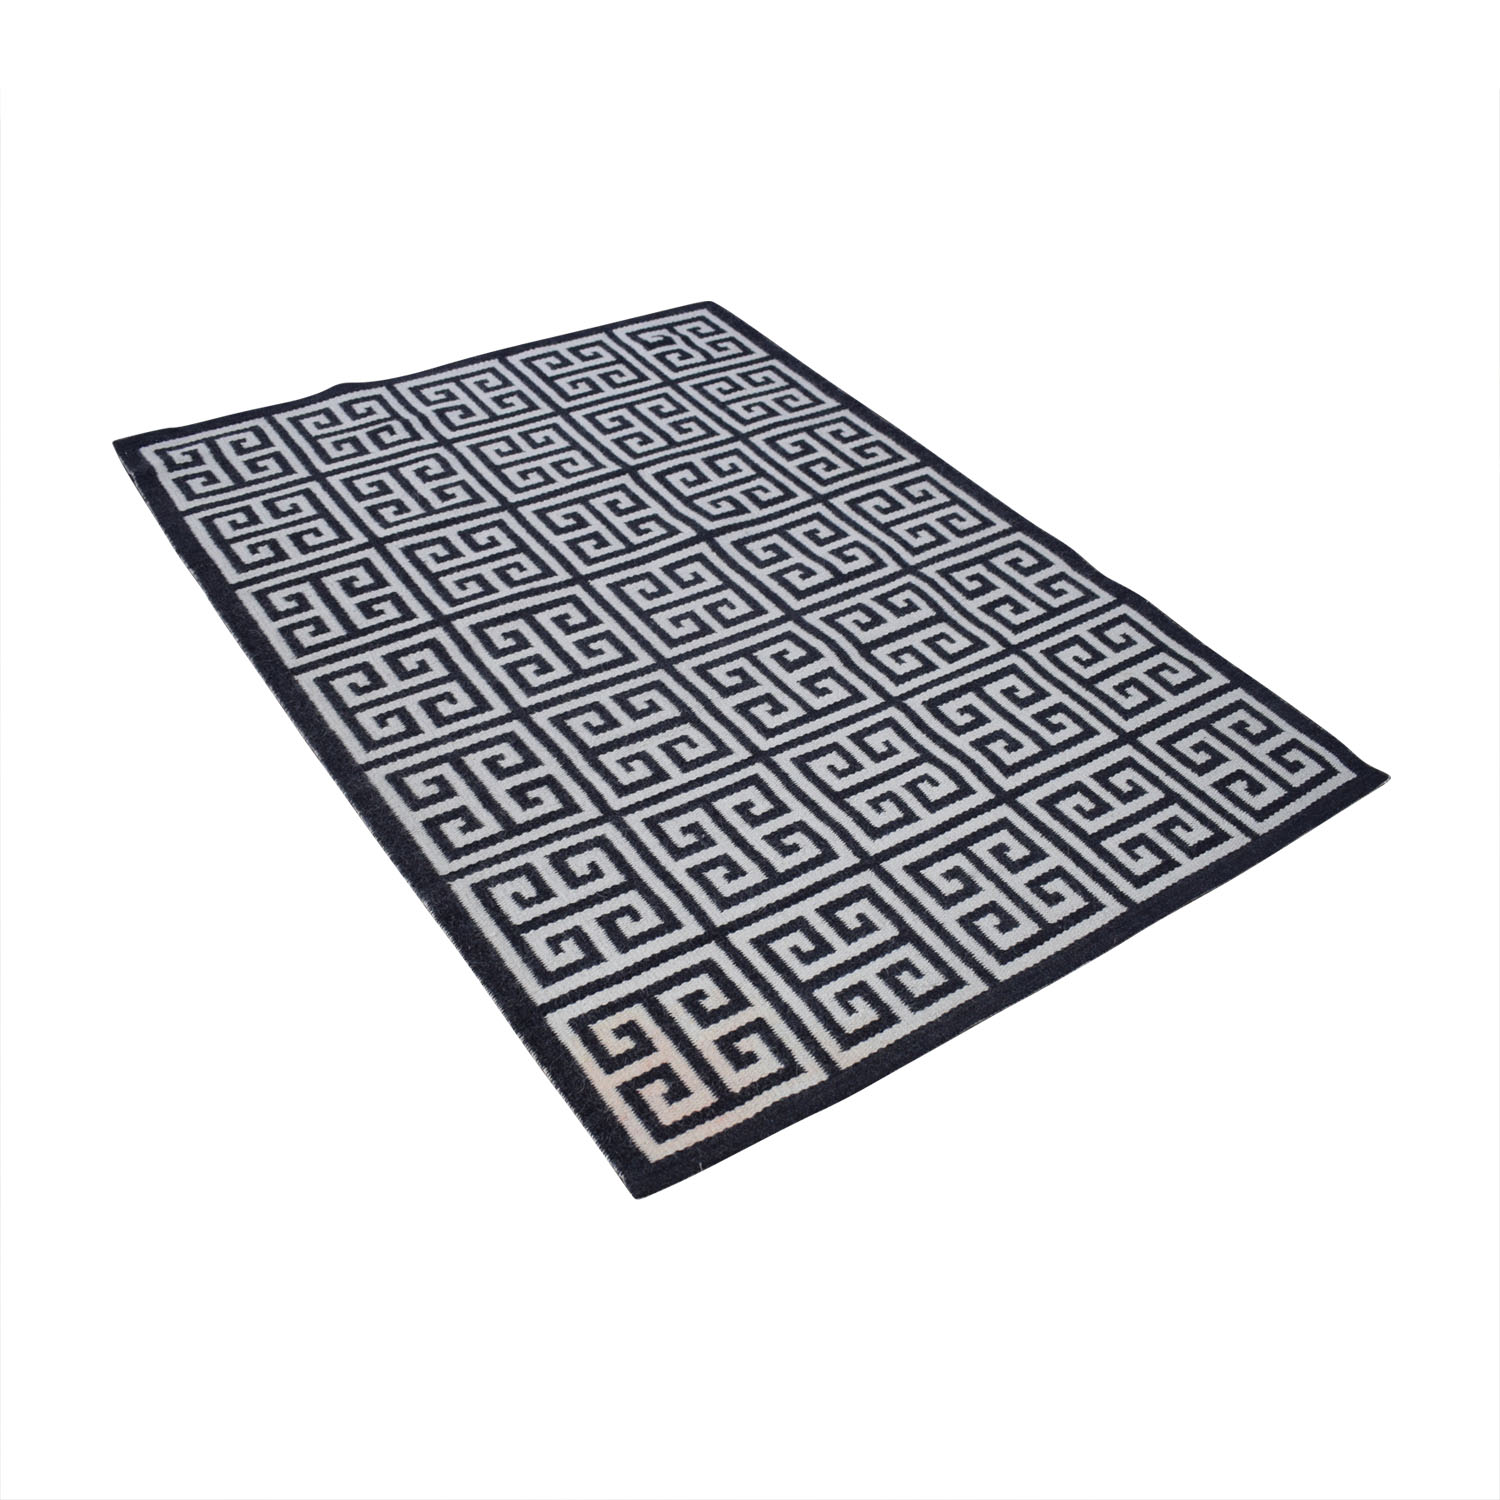 Jonathan Adler Black and White Rug / Rugs